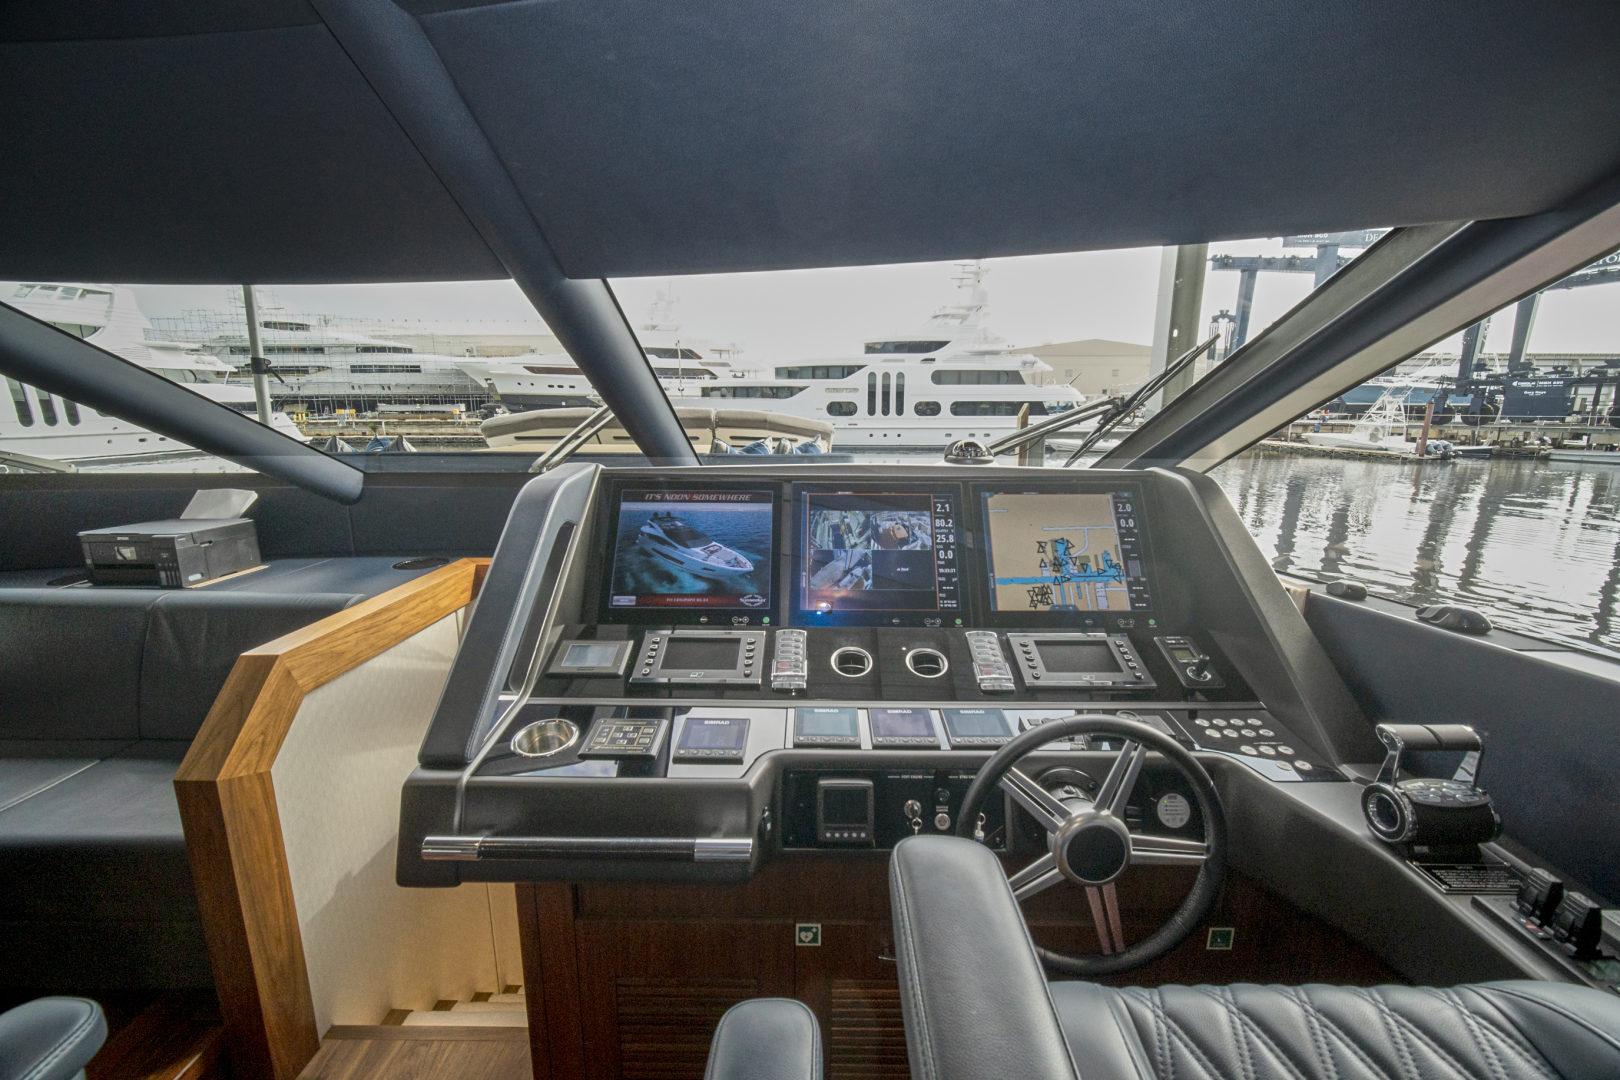 Sunseeker-86 Yacht 2019-Its Noon Somewhere Fort Lauderdale-Florida-United States-1556712 | Thumbnail